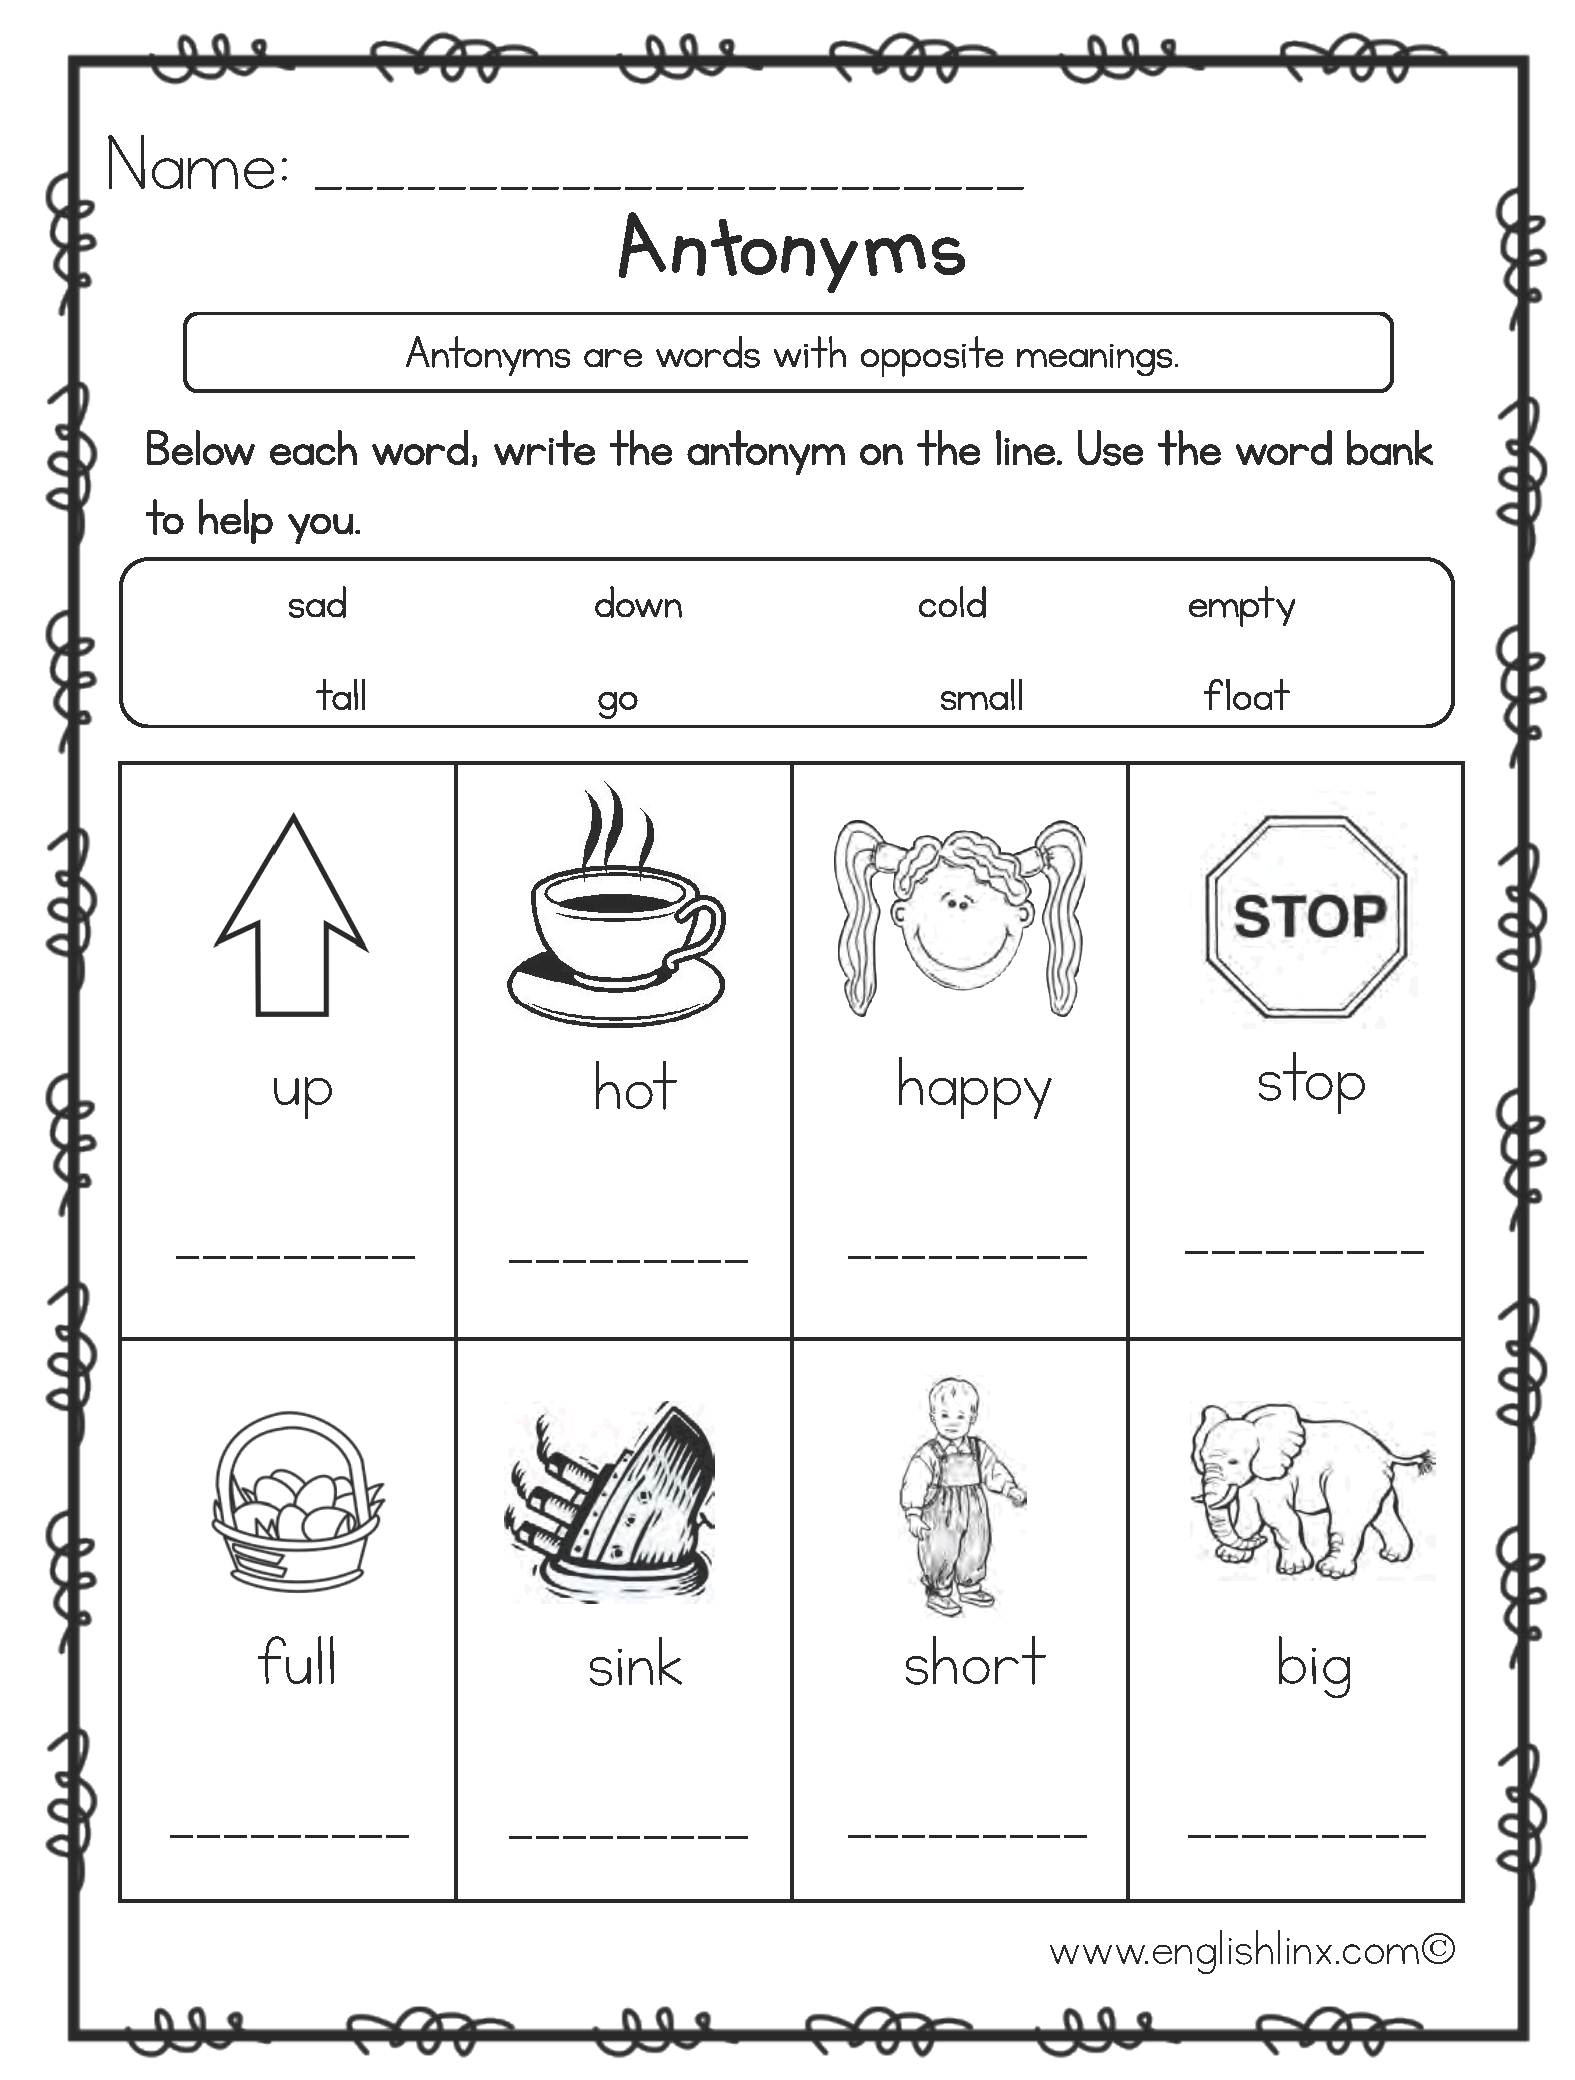 hight resolution of Synonym Worksheet Printable   Printable Worksheets and Activities for  Teachers